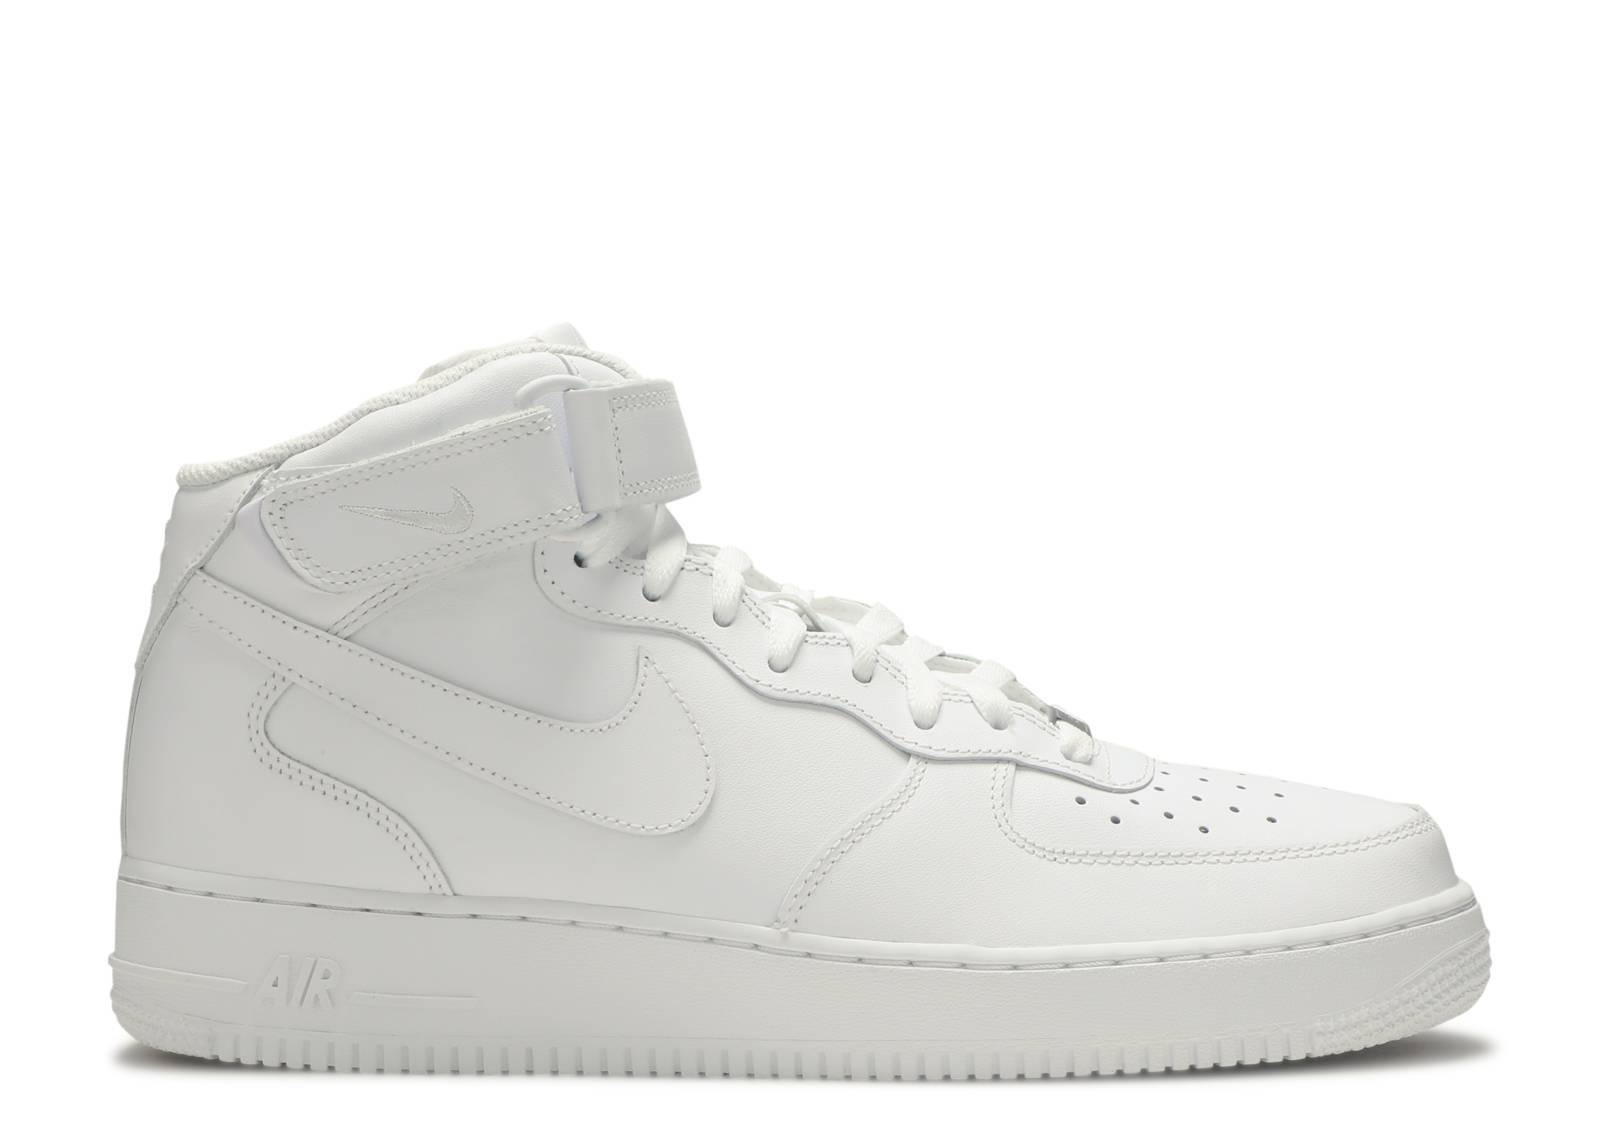 nike air force 1 mids white